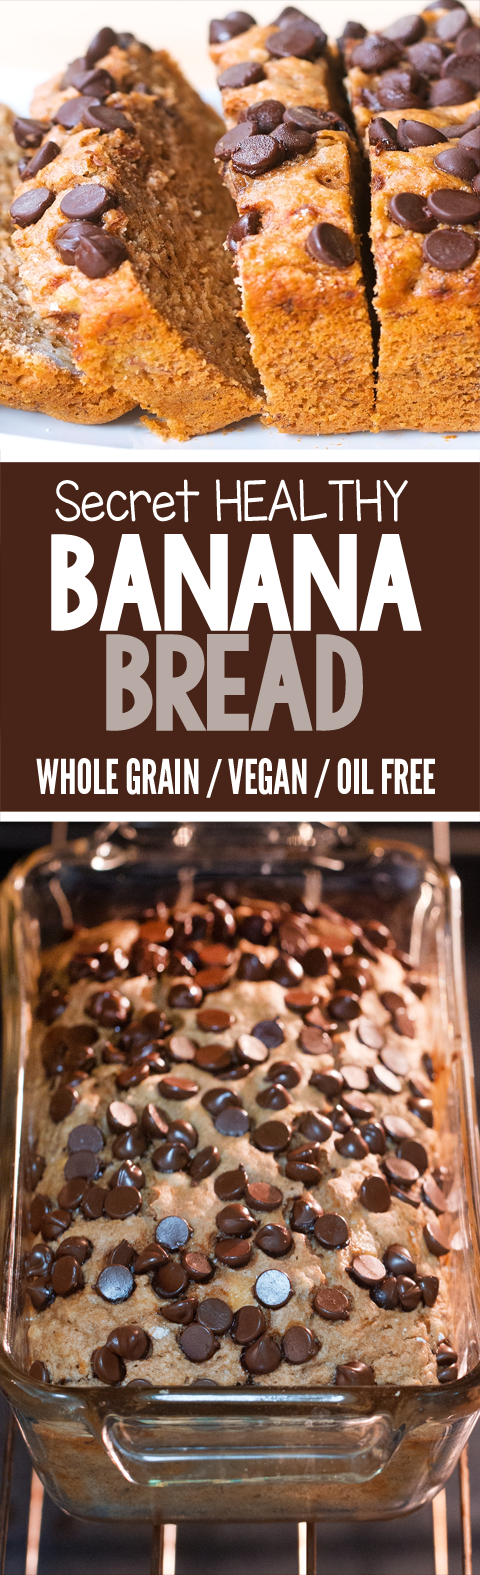 The best healthy banana bread recipe I've ever made, with no refined sugar. You will never believe it is healthy and oil free!